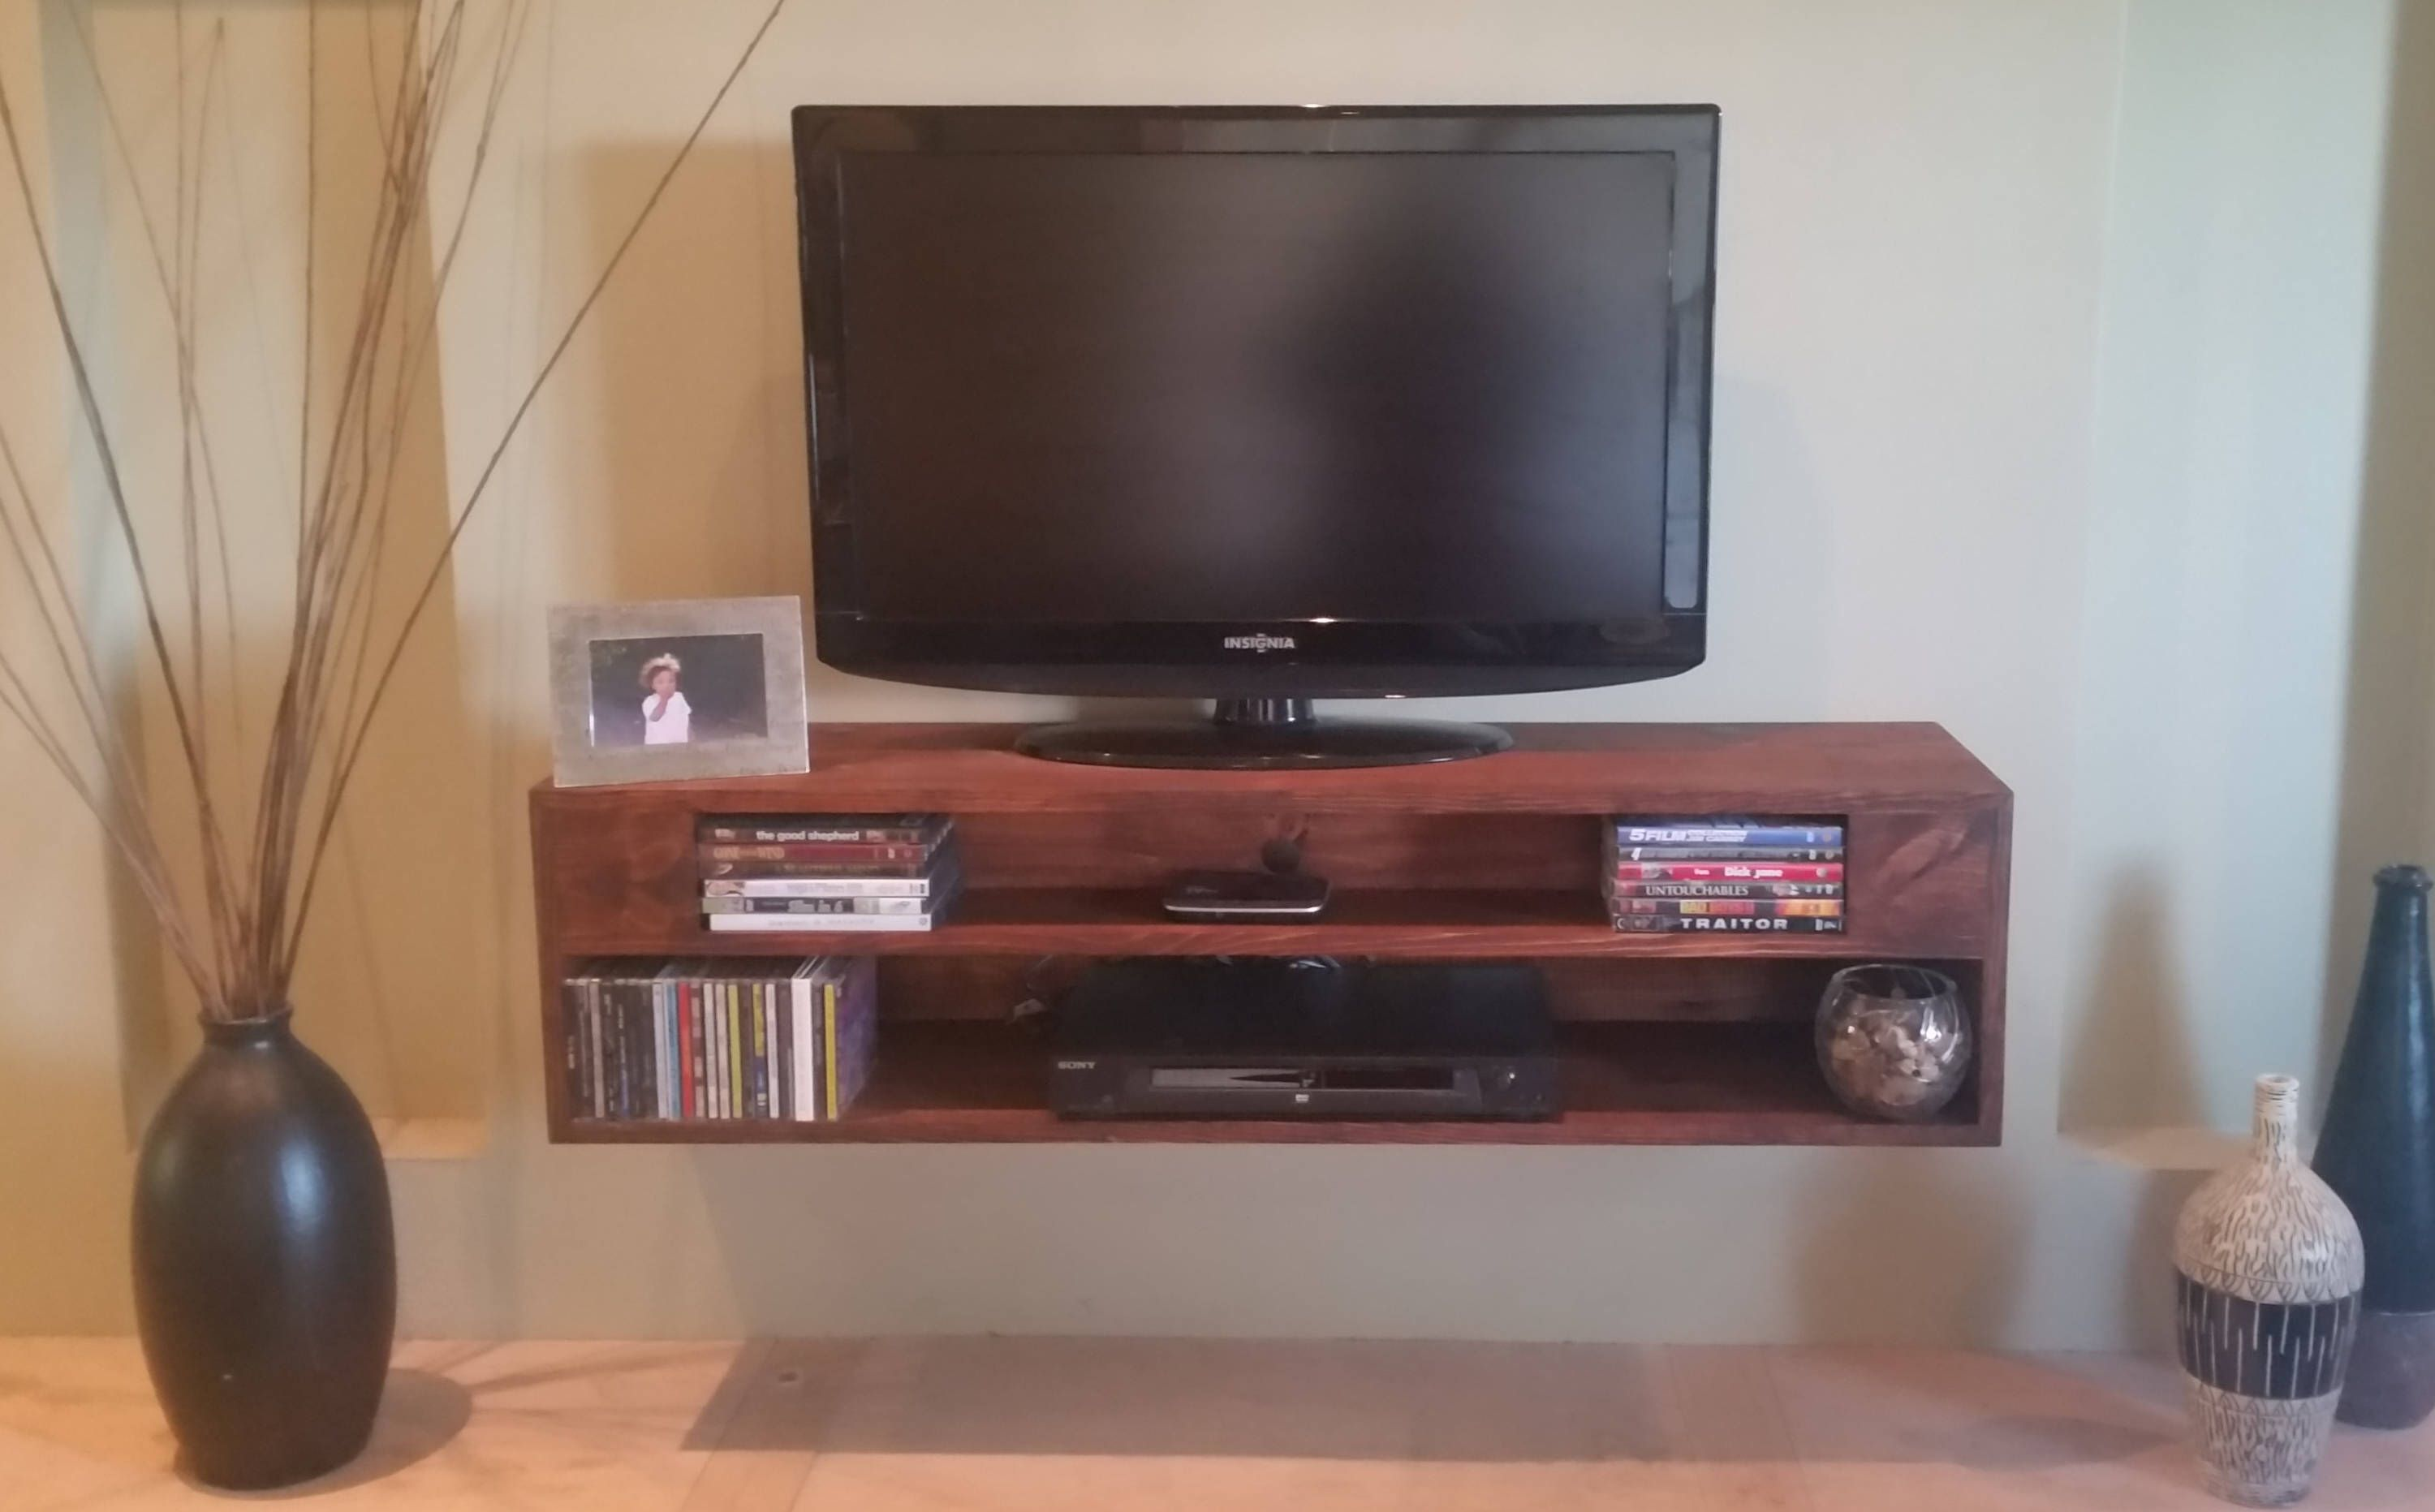 Floating Tv Stand Console 30 Inch To 72 Inch A V Component Shelf Choice Of Stain Color Cus Floating Tv Stand Floating Shelf Decor Rustic Floating Shelves